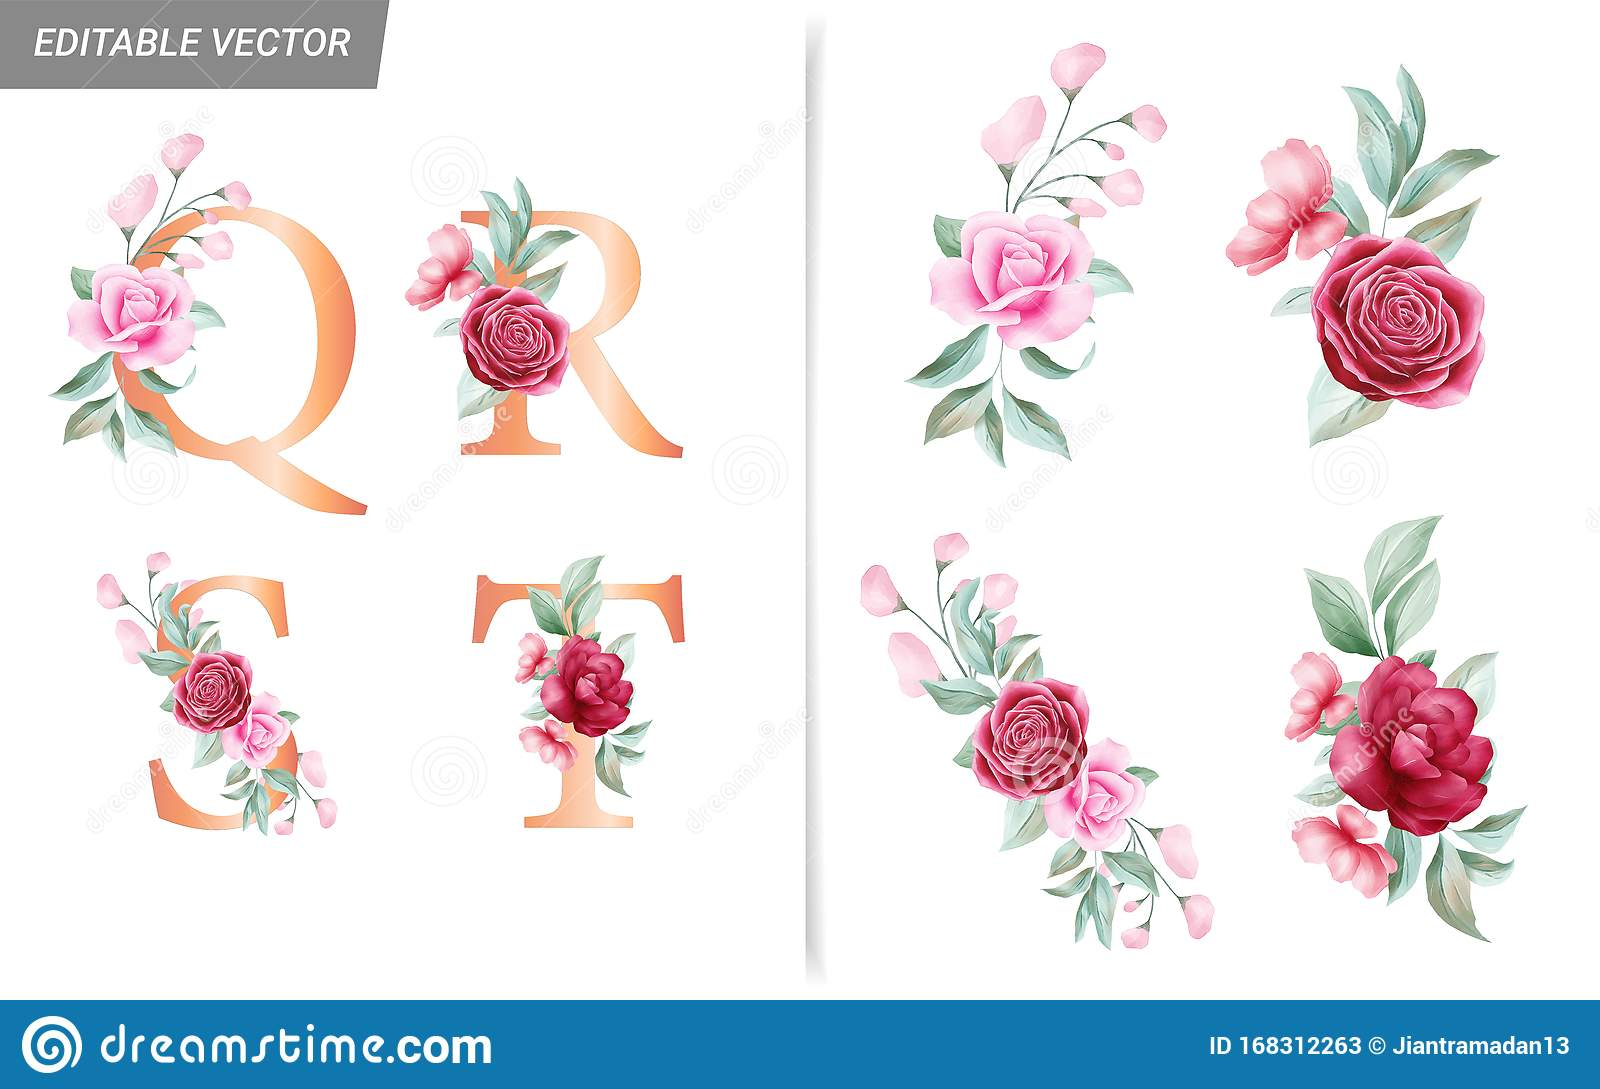 Floral Arrangements Stock Illustrations 4 005 Floral Arrangements Stock Illustrations Vectors Clipart Dreamstime